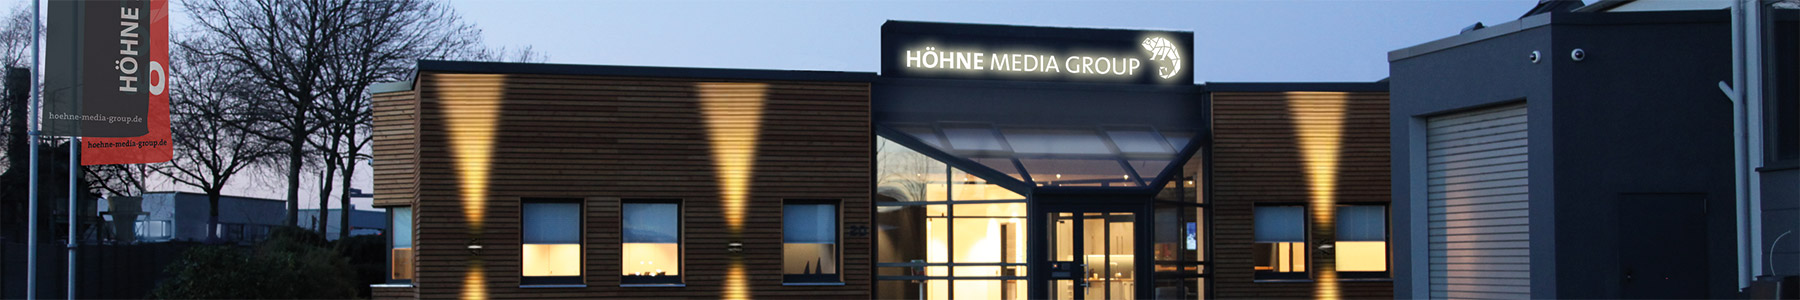 https://equikom.hoehne-media.de/wp-content/uploads/2016/05/hoehne-media-group-iserlohn-gebaeude-01-1800x300.jpg